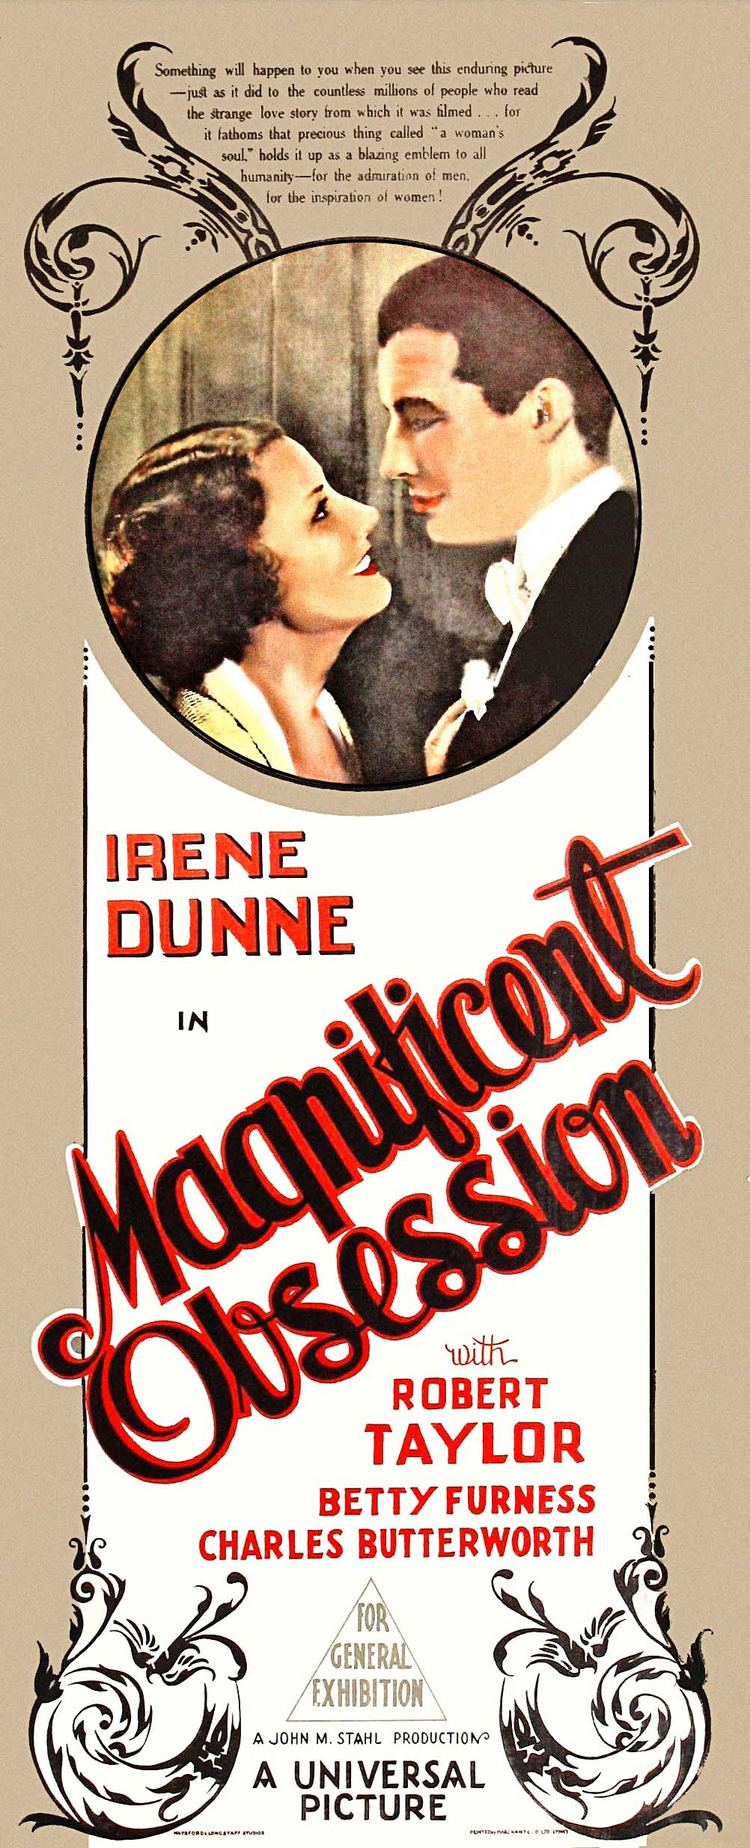 Magnificent Obsession (1935 film) Magnificent Obsession 1935